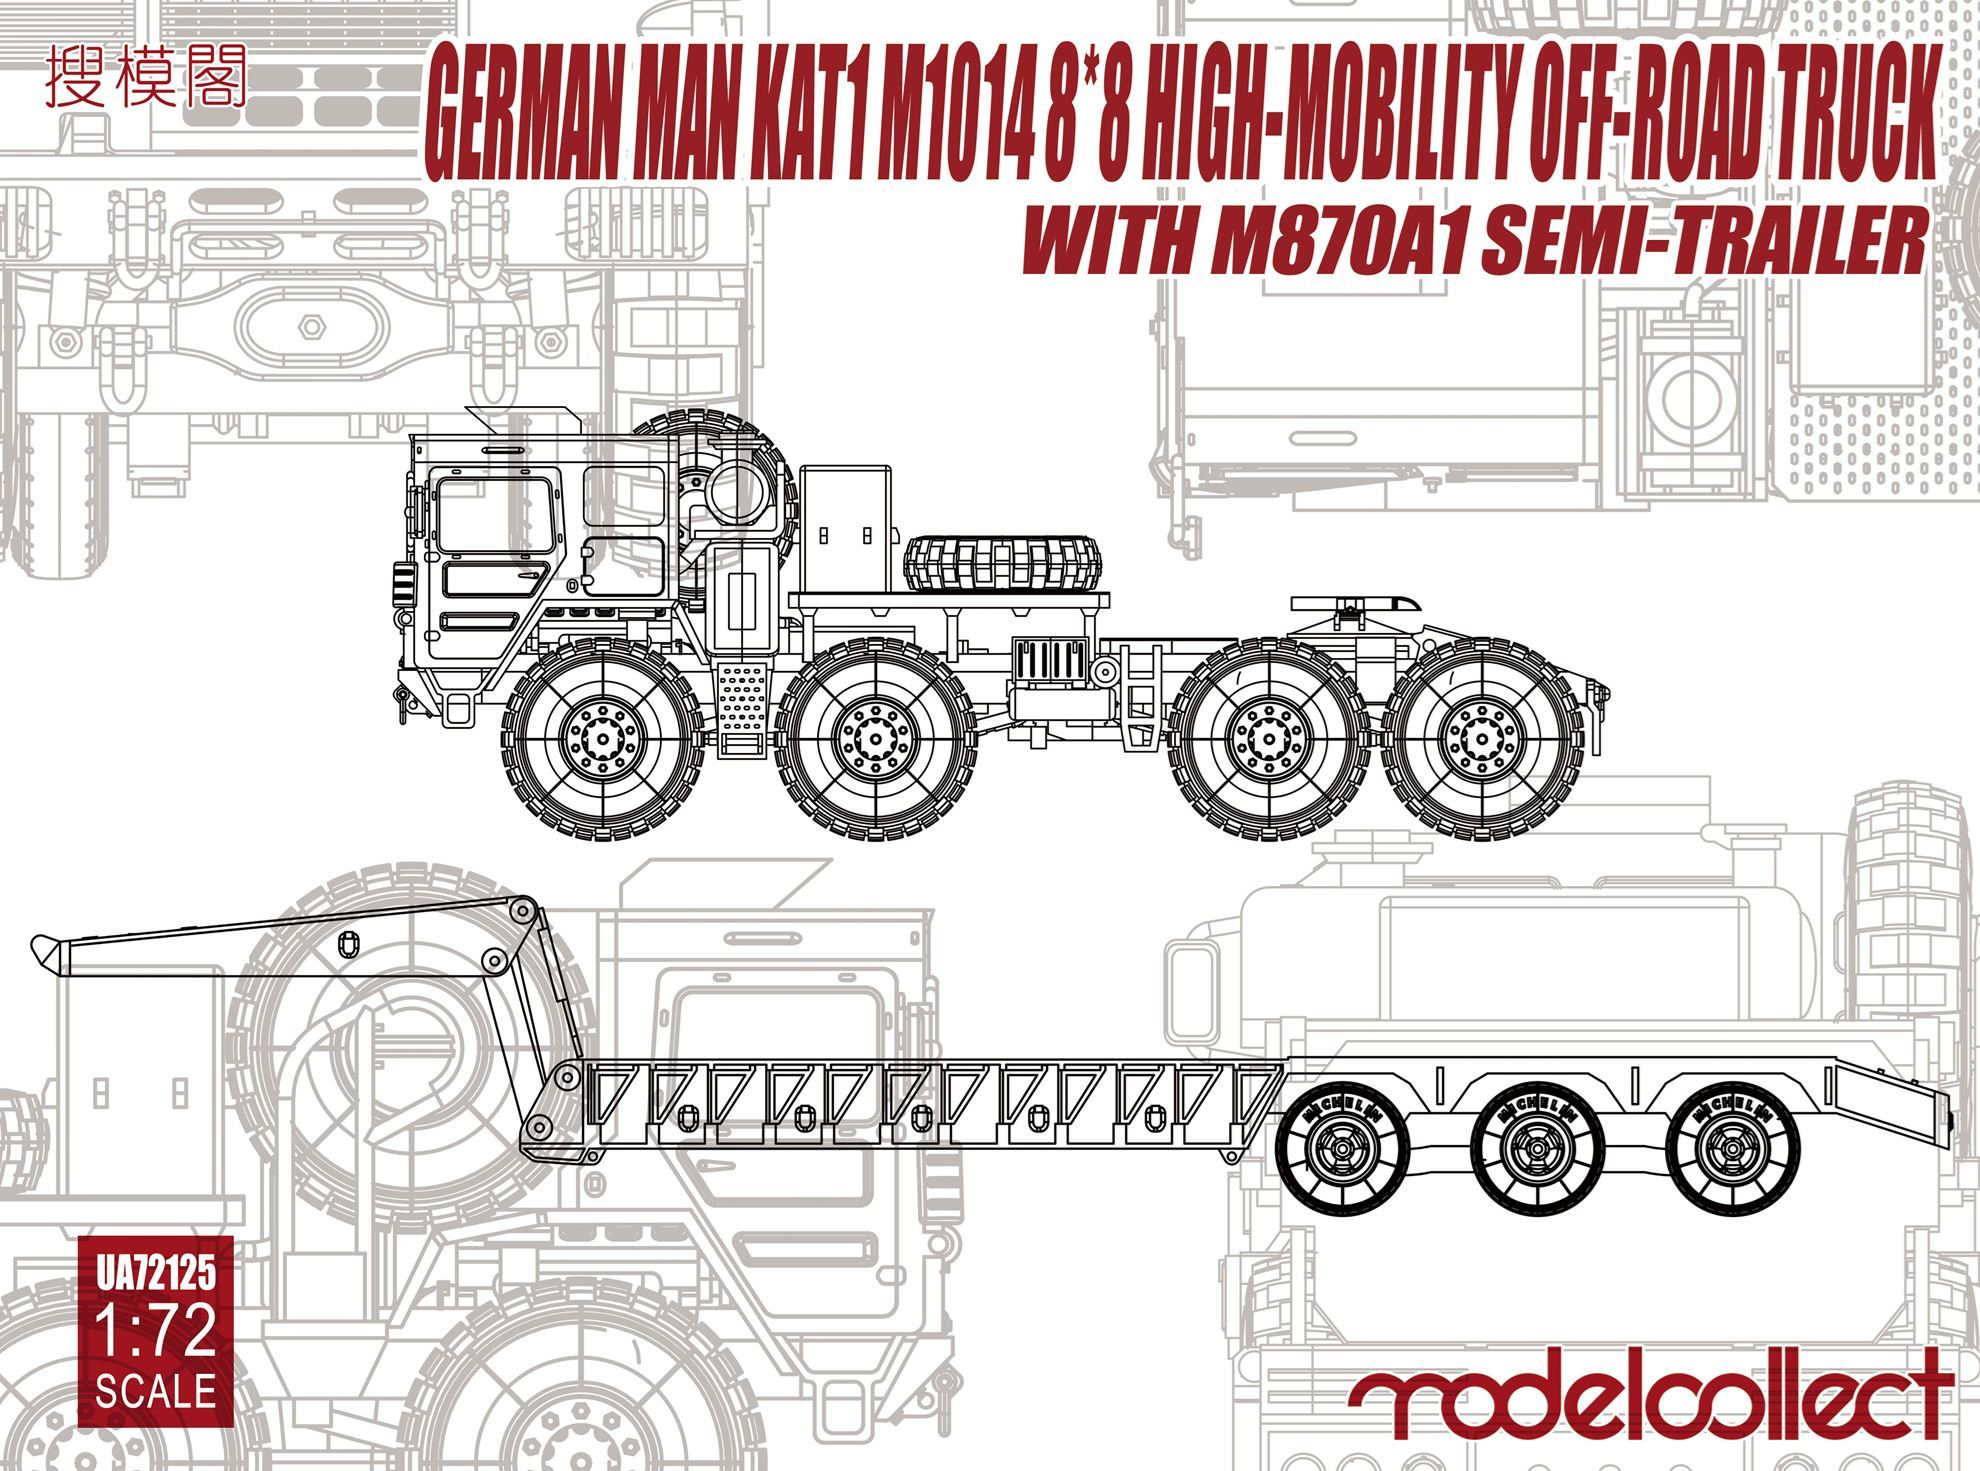 0004543_german-man-kat1m1014-88-high-mobility-off-road-truck-with-m870a1-semi-trailer.jpeg